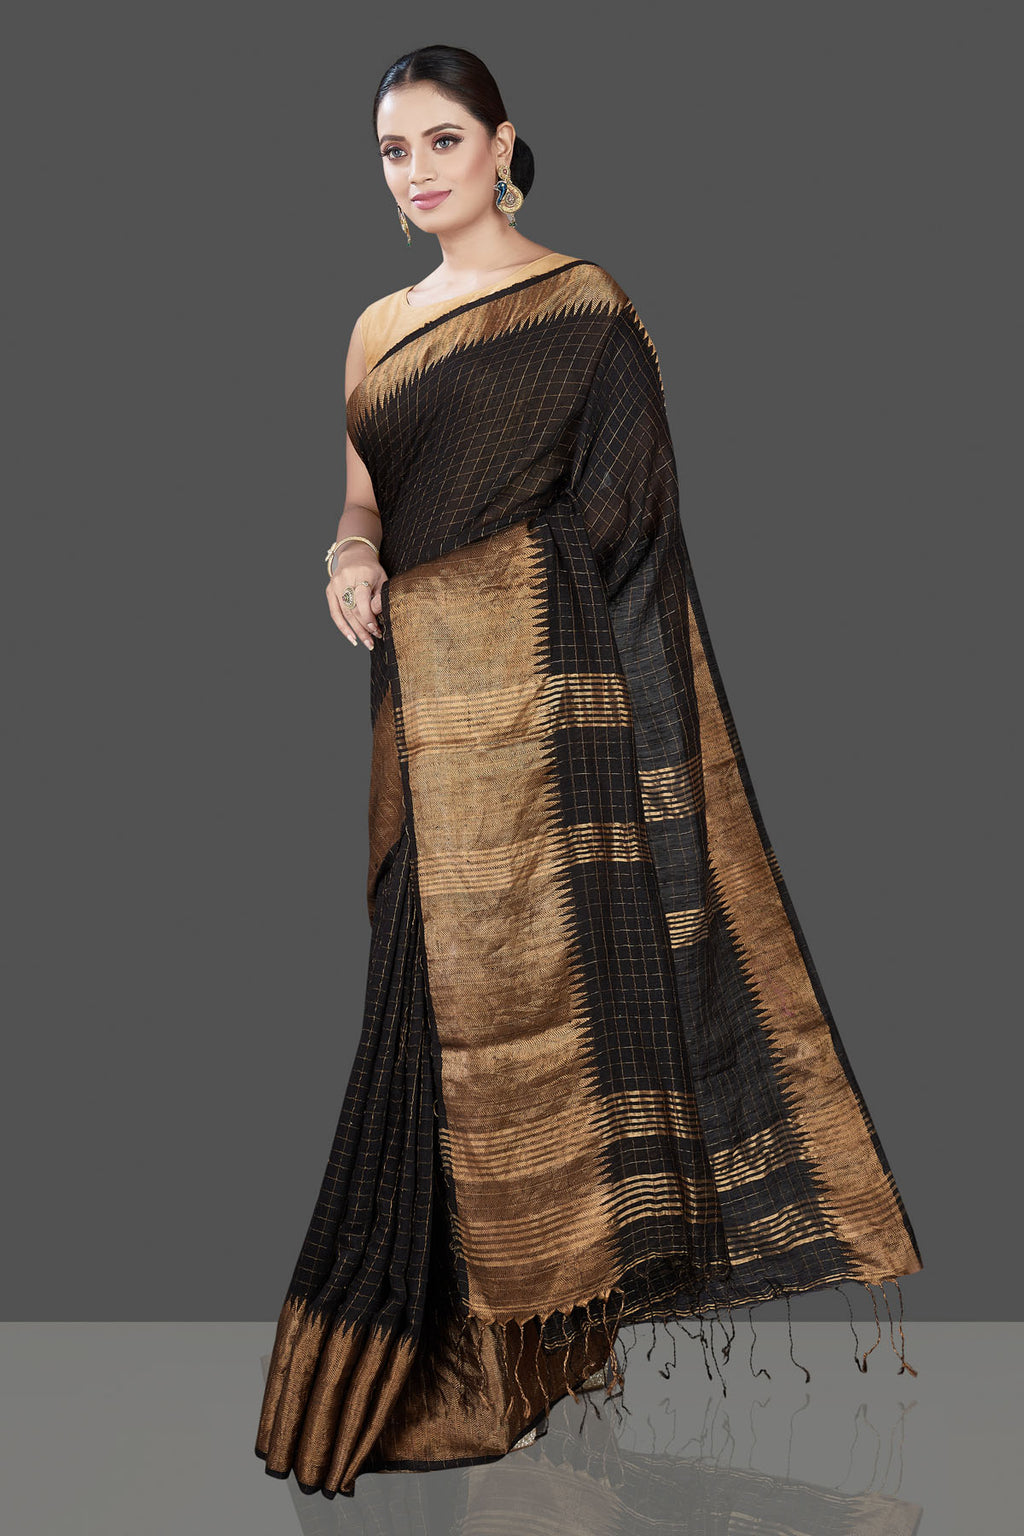 Shop gorgeous black matka silk sari online in USA with golden zari border. Be the talk of the occasion in exquisite designer sarees, pure silk sarees, tussar saris, embroidered sarees, handloom sarees from Pure Elegance Indian fashion store in USA.-full view